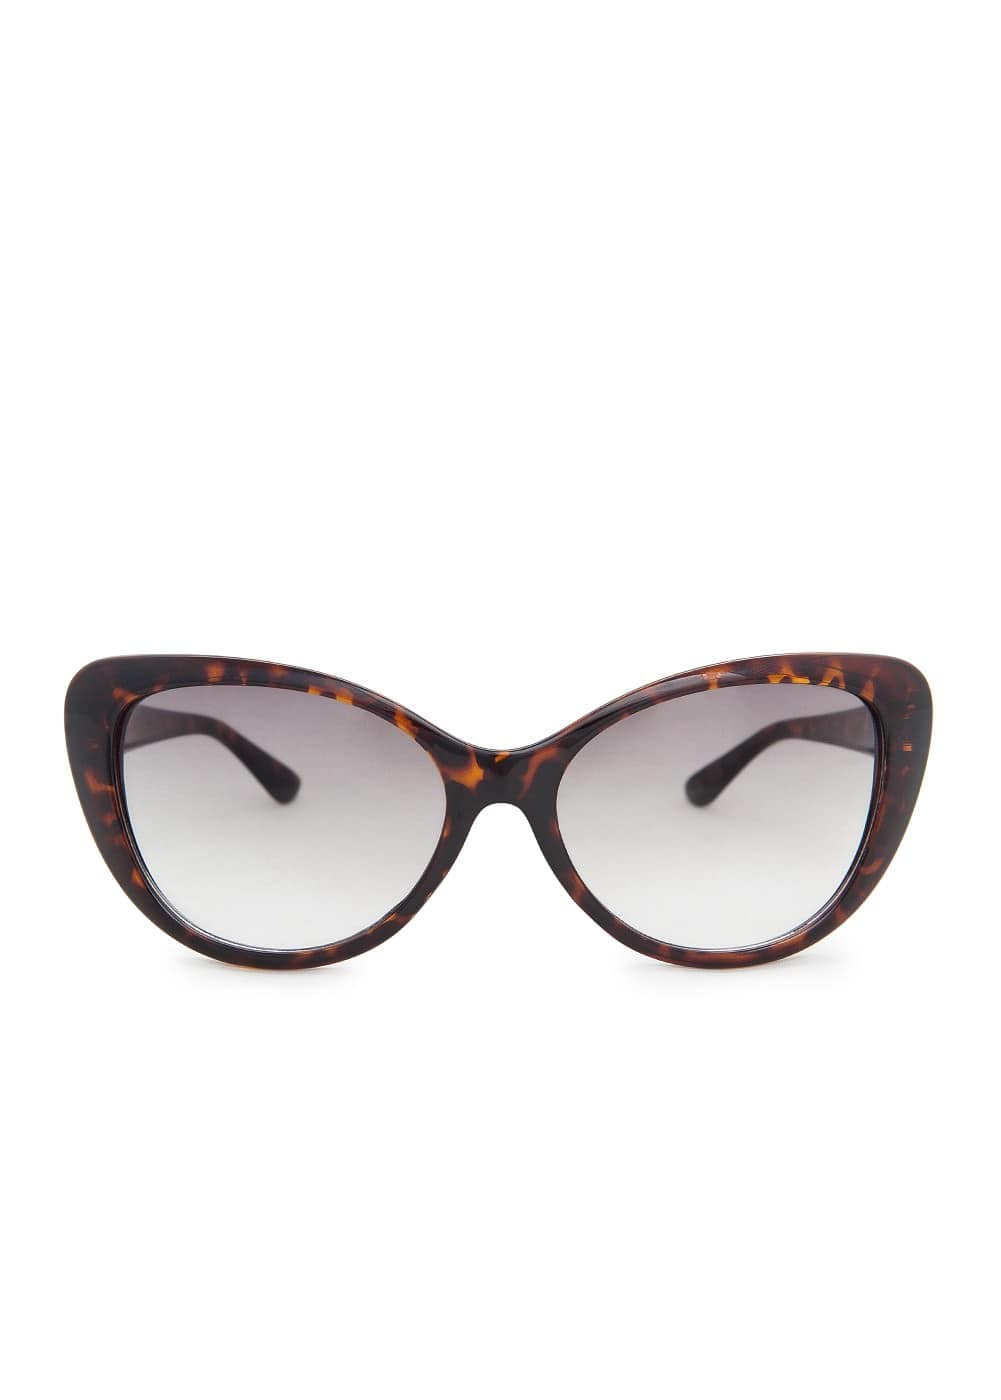 Cat-eye tortoiseshell sunglasses